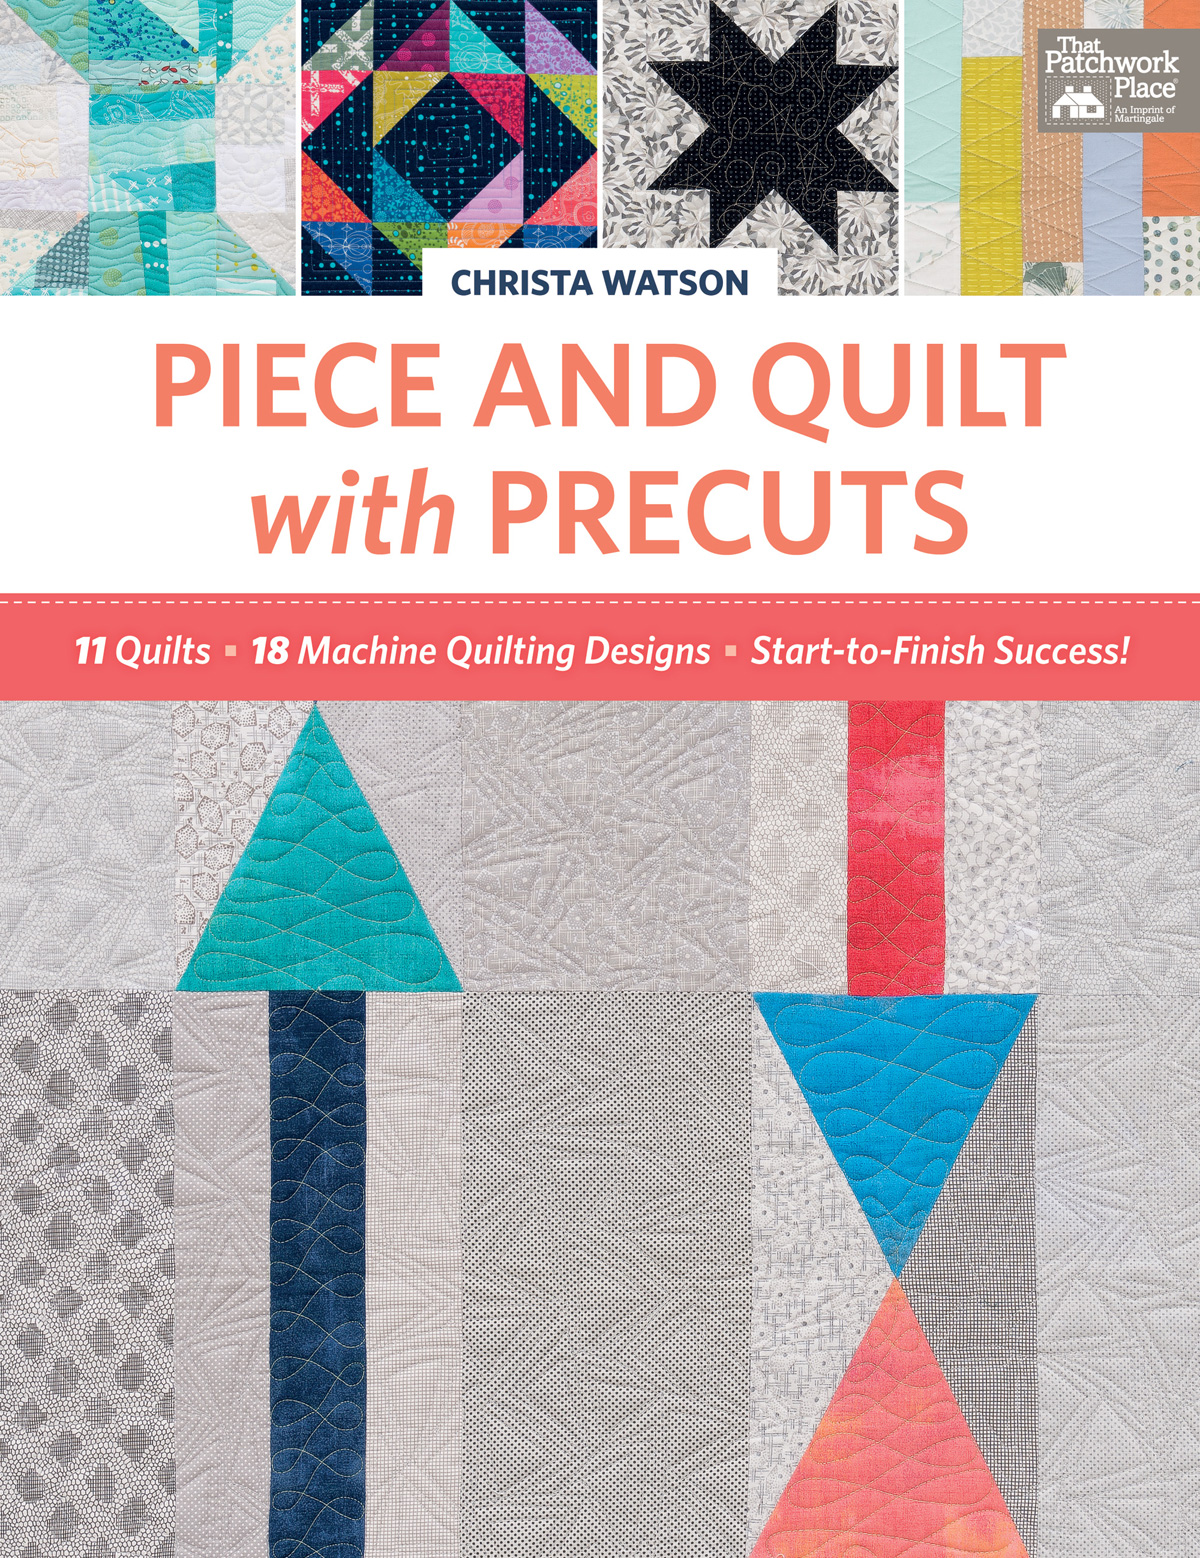 Pre-Order Piece and Quilt with Precuts – My Next Book!